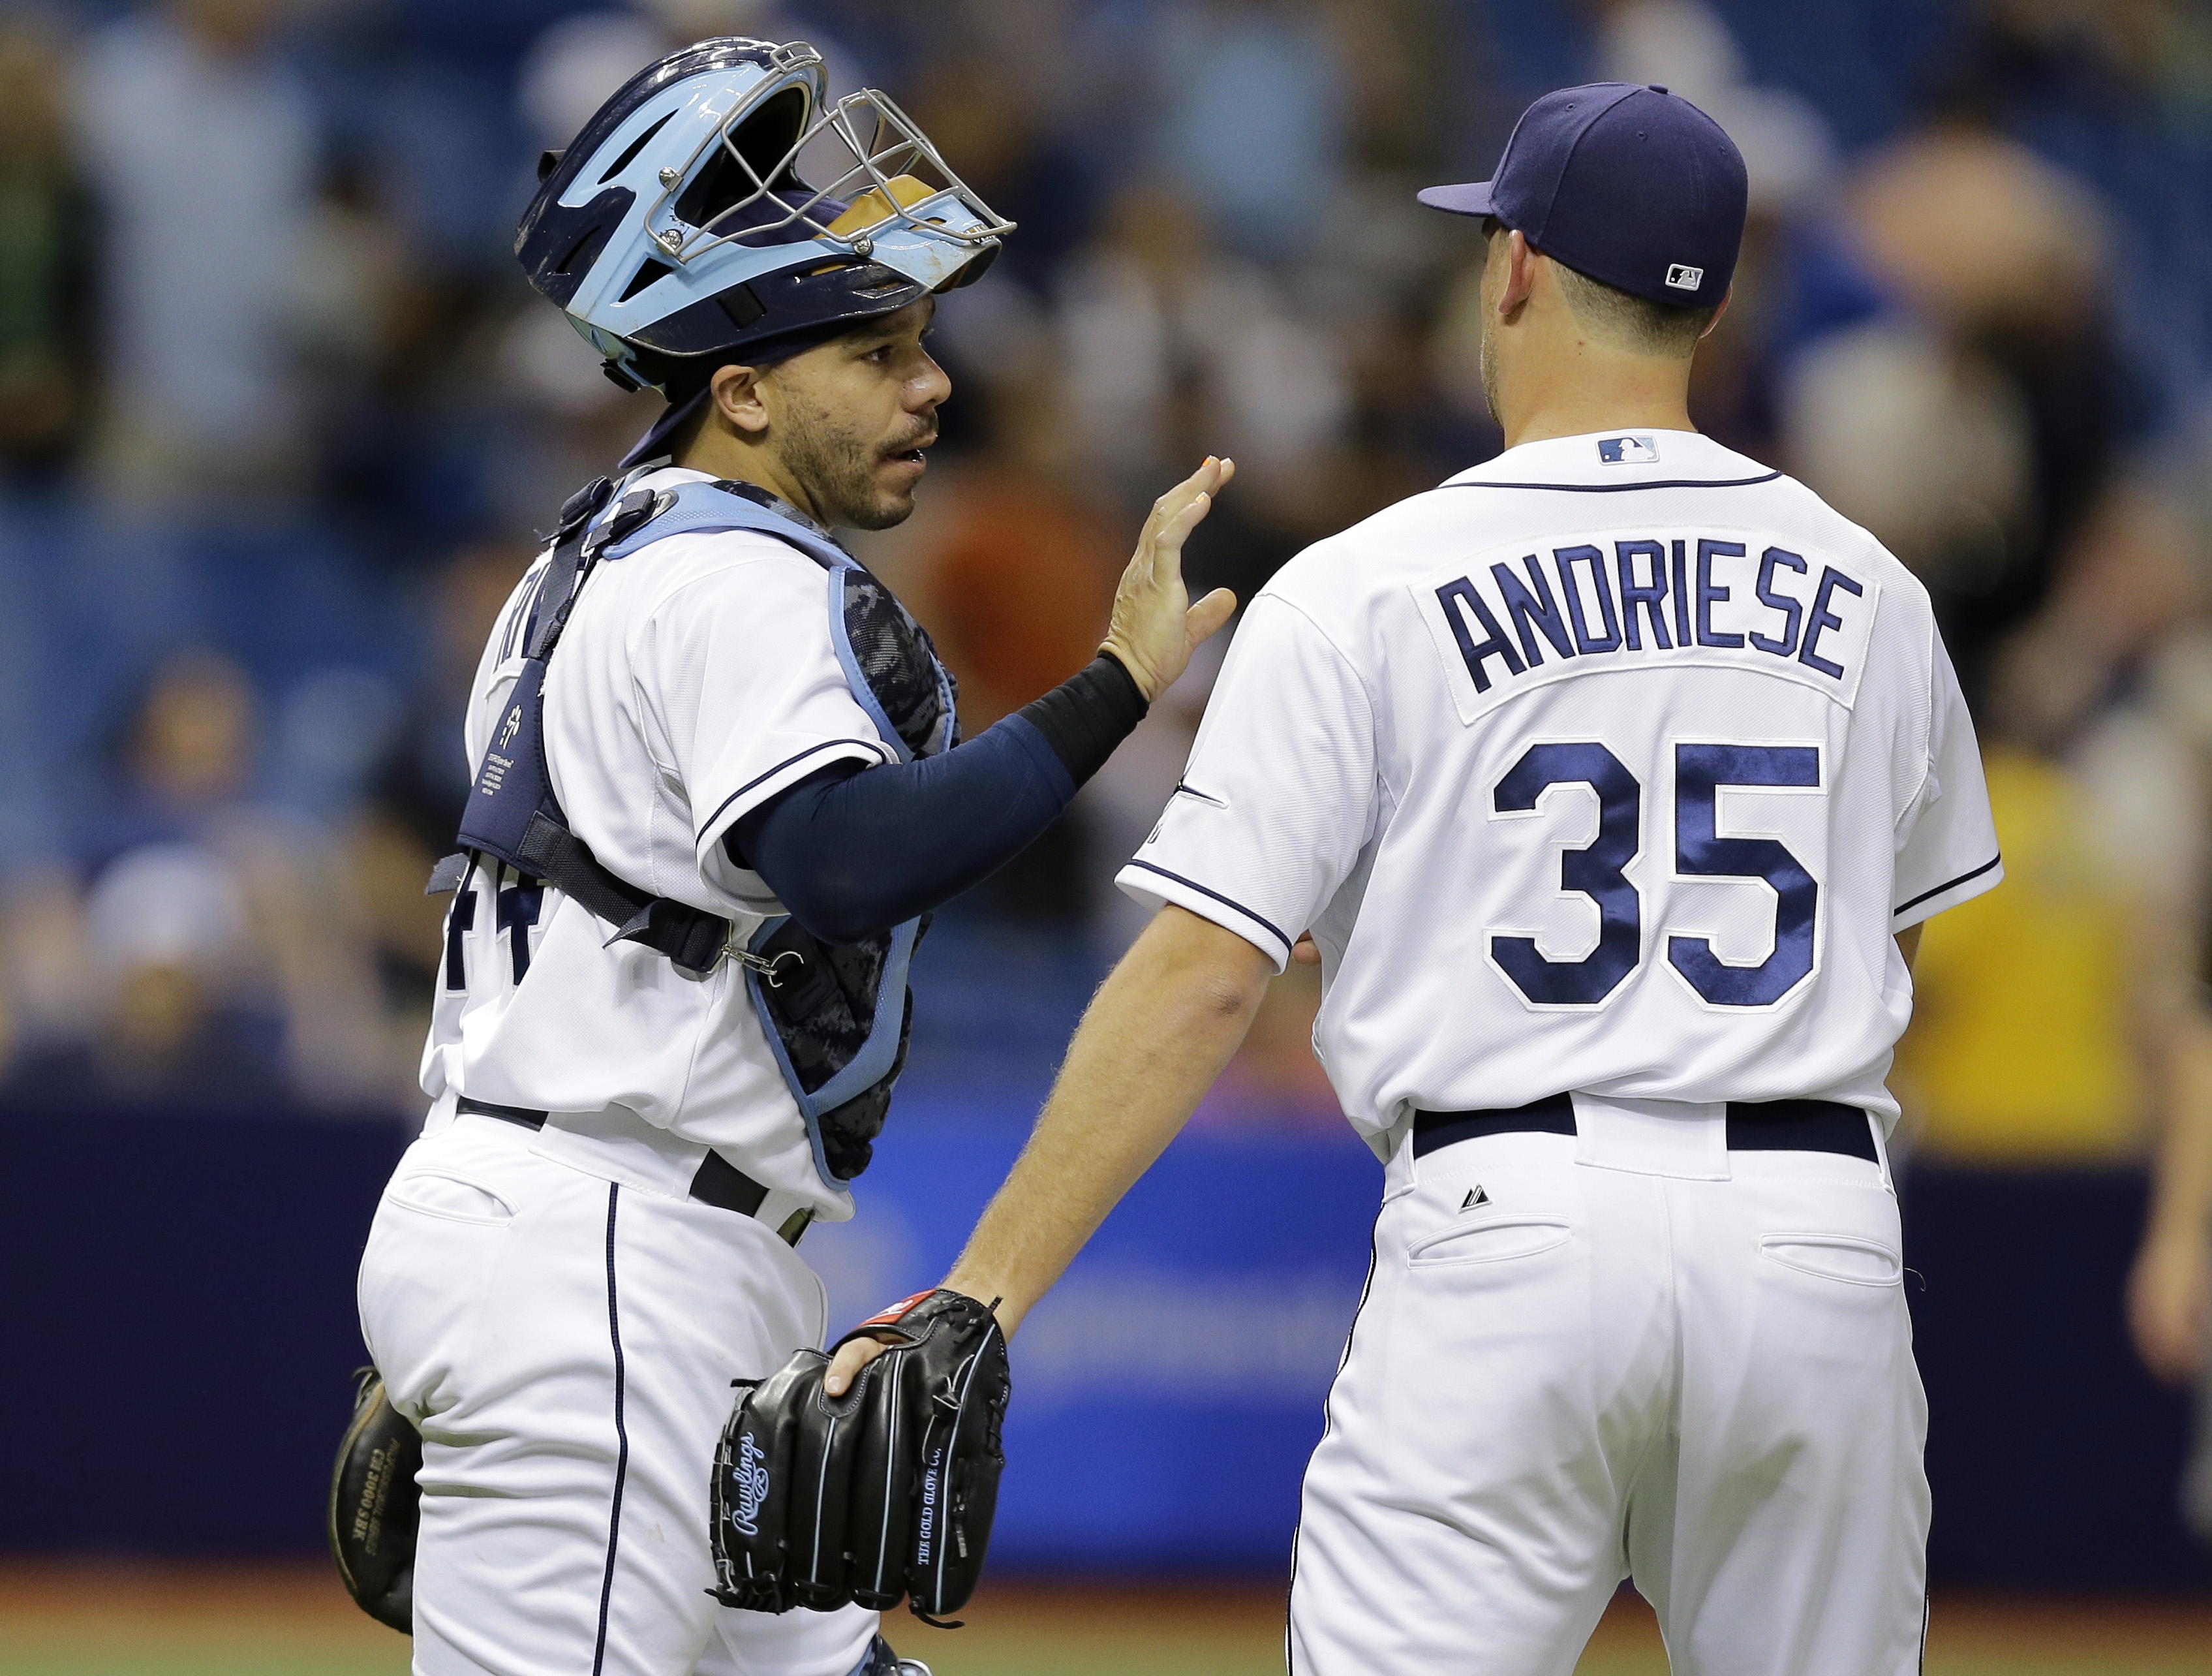 Tampa Bay Rays catcher Rene Rivera, left, congratulates relief pitcher Matt Andriese after closing out the New York Yankees during the ninth inning of a baseball game Thursday, May 14, 2015, in St. Petersburg, Fla. The Rays won 6-1. (AP Photo/Chris O'Mear